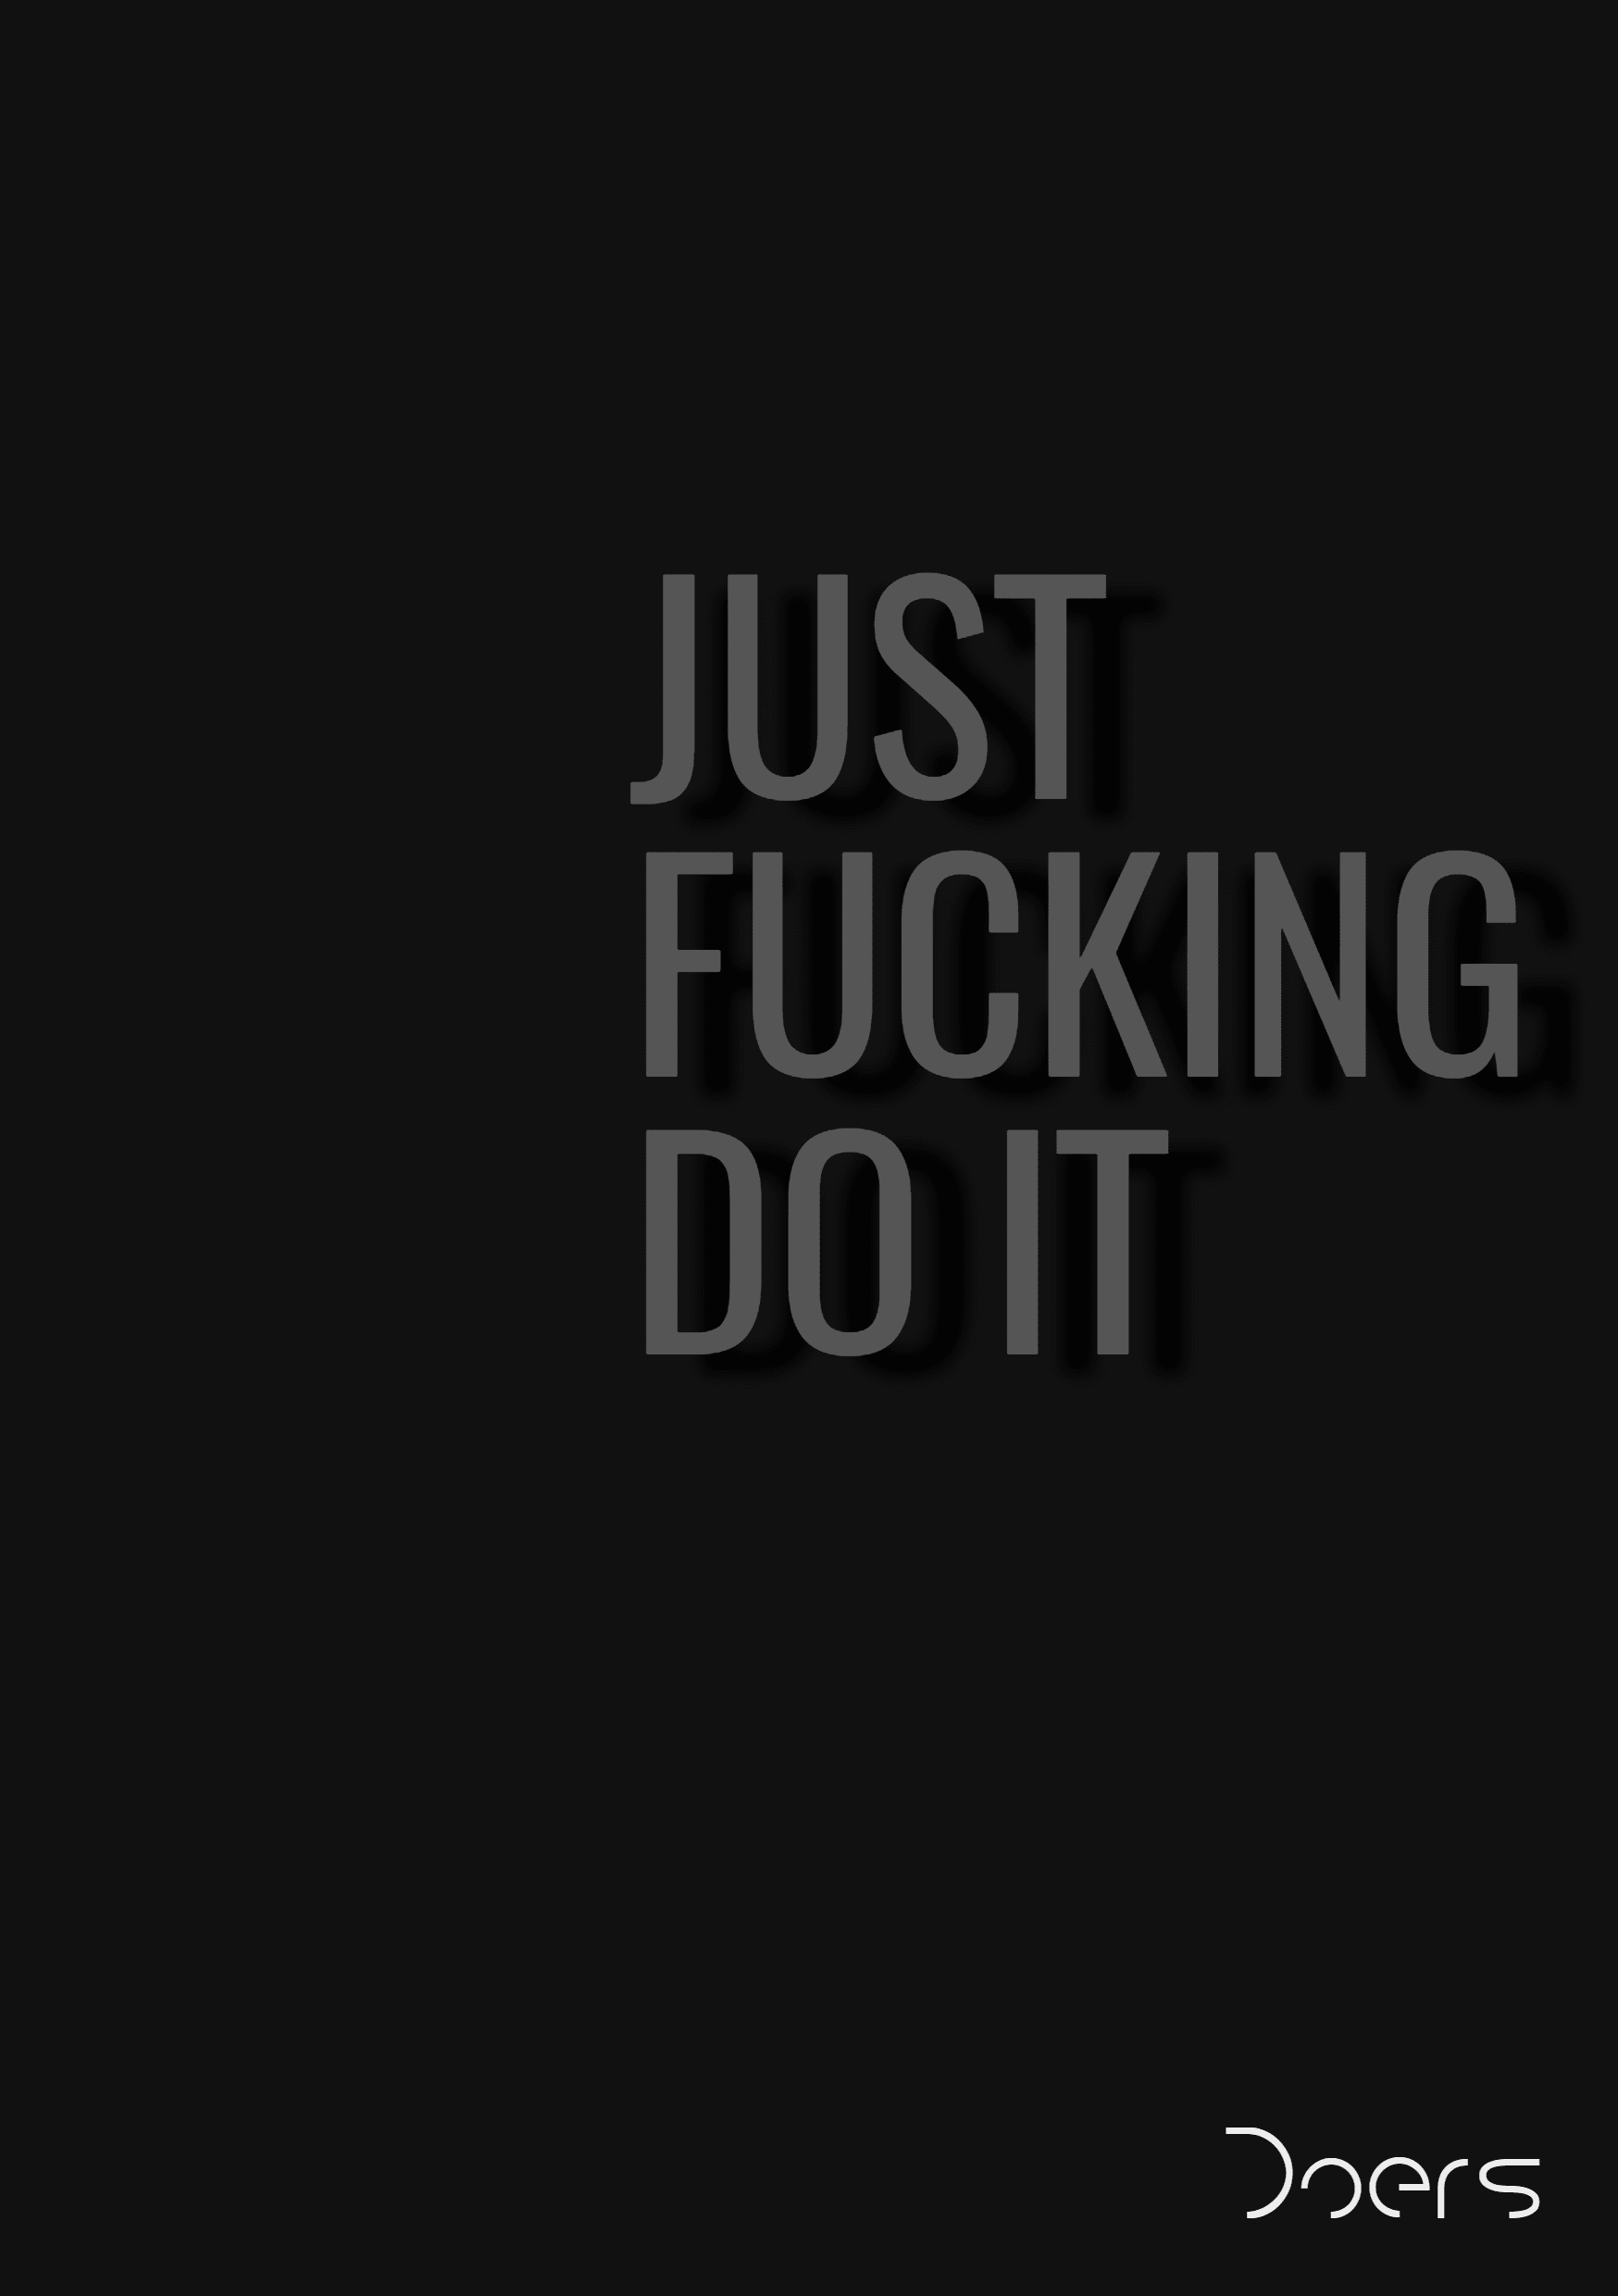 Black,                Text,                And,                White,                Font,                Monochrome,                Photography,                Darkness,                Computer,                Wallpaper,                Logo,                Line,                 Free Image